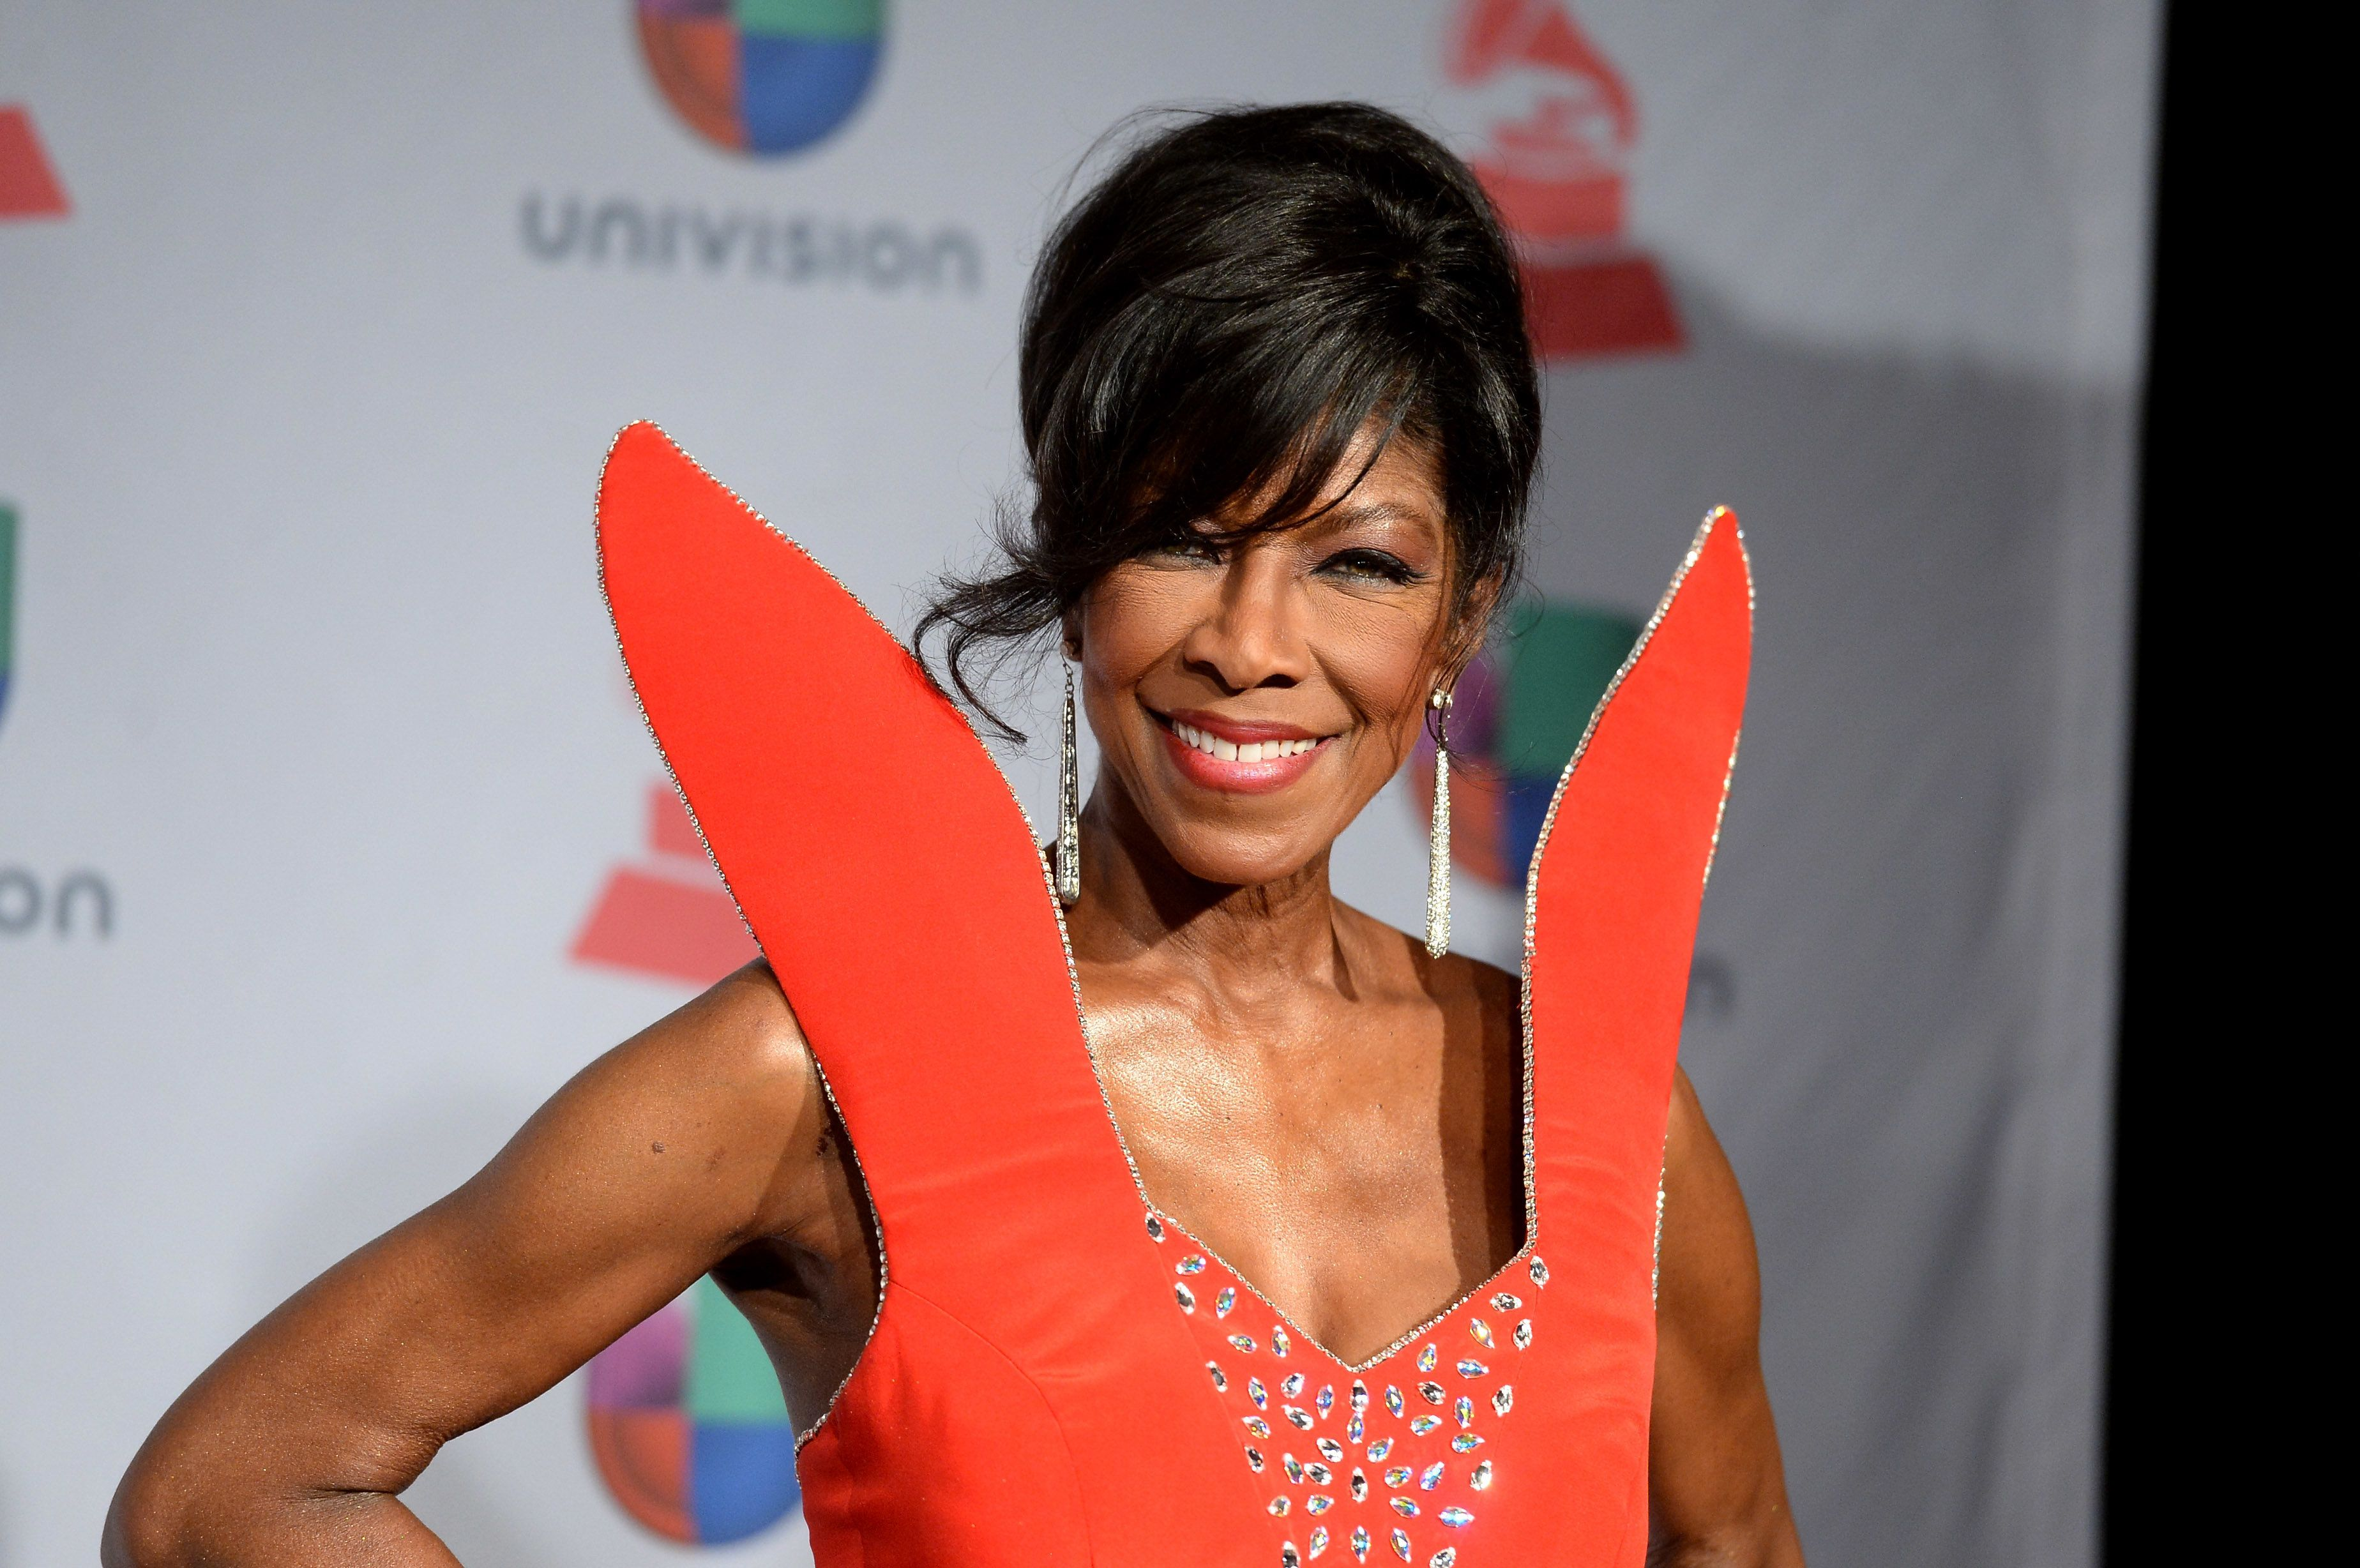 LAS VEGAS, NV - NOVEMBER 21:  Singer/songwriter Natalie Cole poses in the press room at the 14th Annual Latin GRAMMY Awards held at the Mandalay Bay Events Center on November 21, 2013 in Las Vegas, Nevada.  (Photo by Jason Merritt/Getty Images)